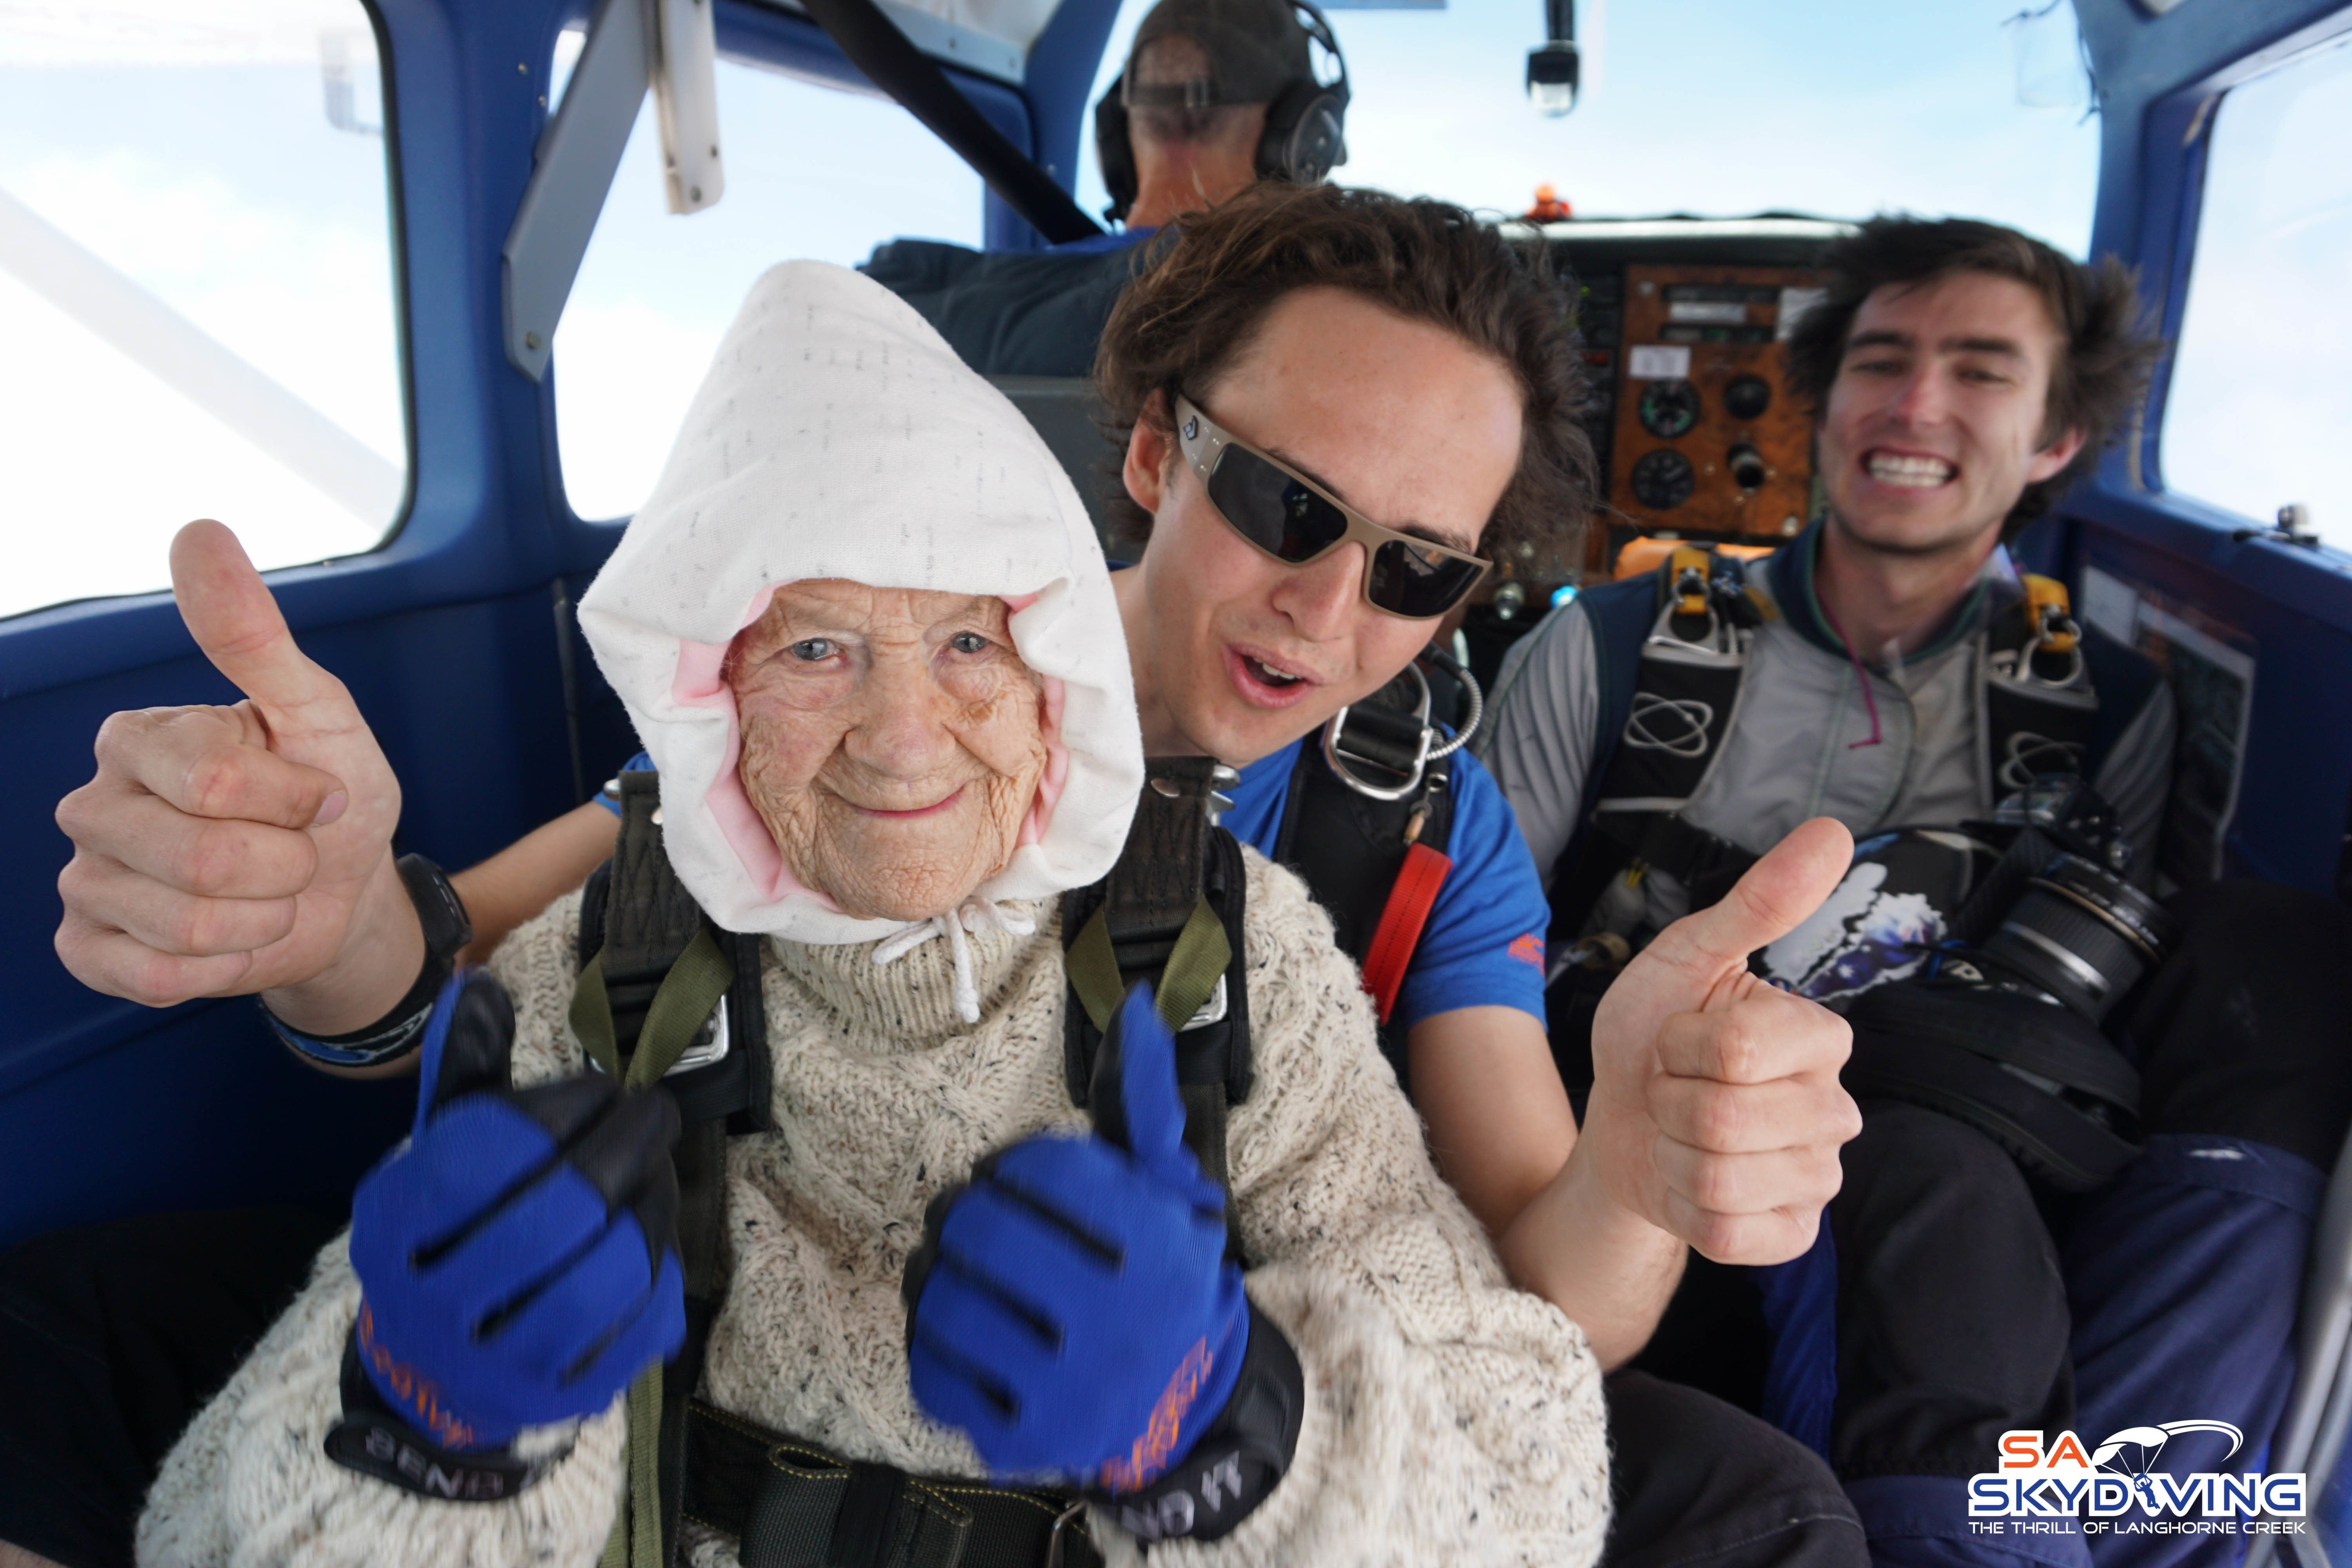 Irene O'Shea became the world's oldest skydiver after jumping from a plane in South Australia.